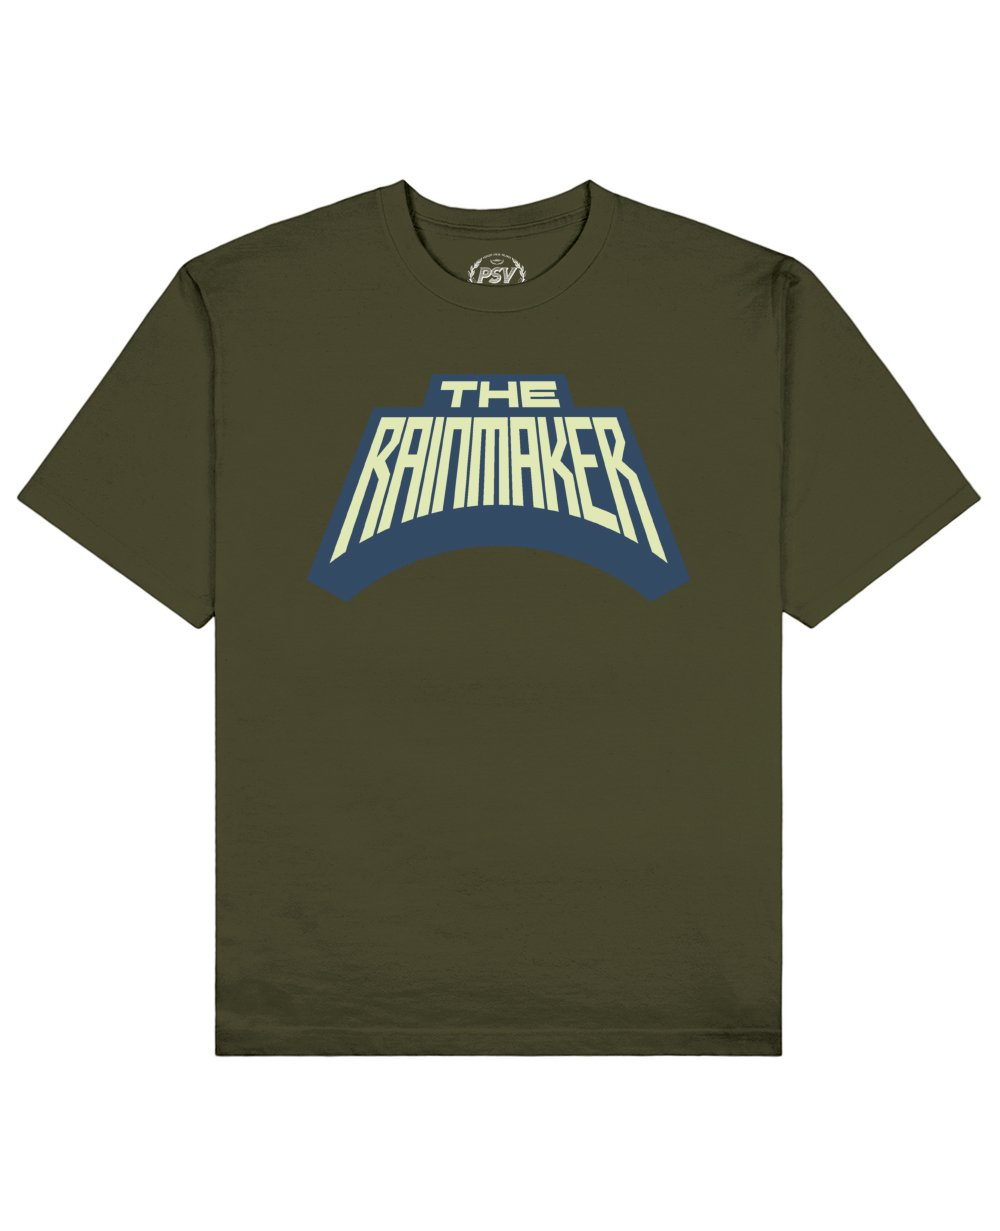 The Rainmaker Print T-Shirt in Khaki - T-Shirts - PSV - BRANMA